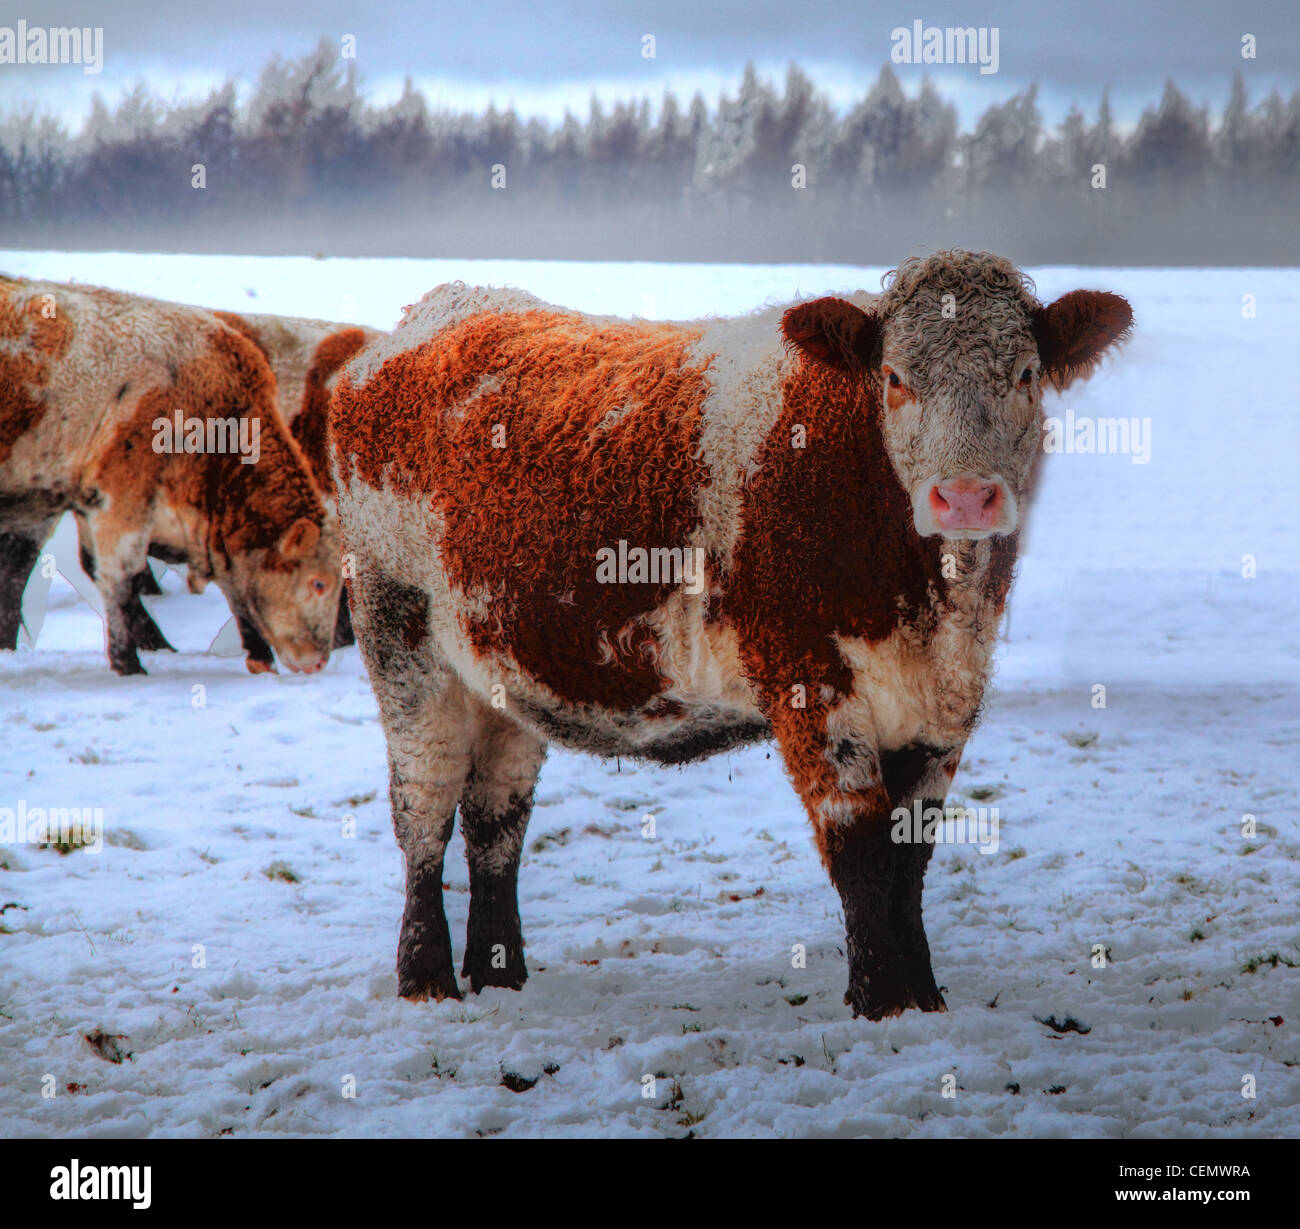 Brown and White Highland Cow near Dalkeith Palace, Midlothian, in ice, snow, harsh winter, Scotland, UK - Stock Image